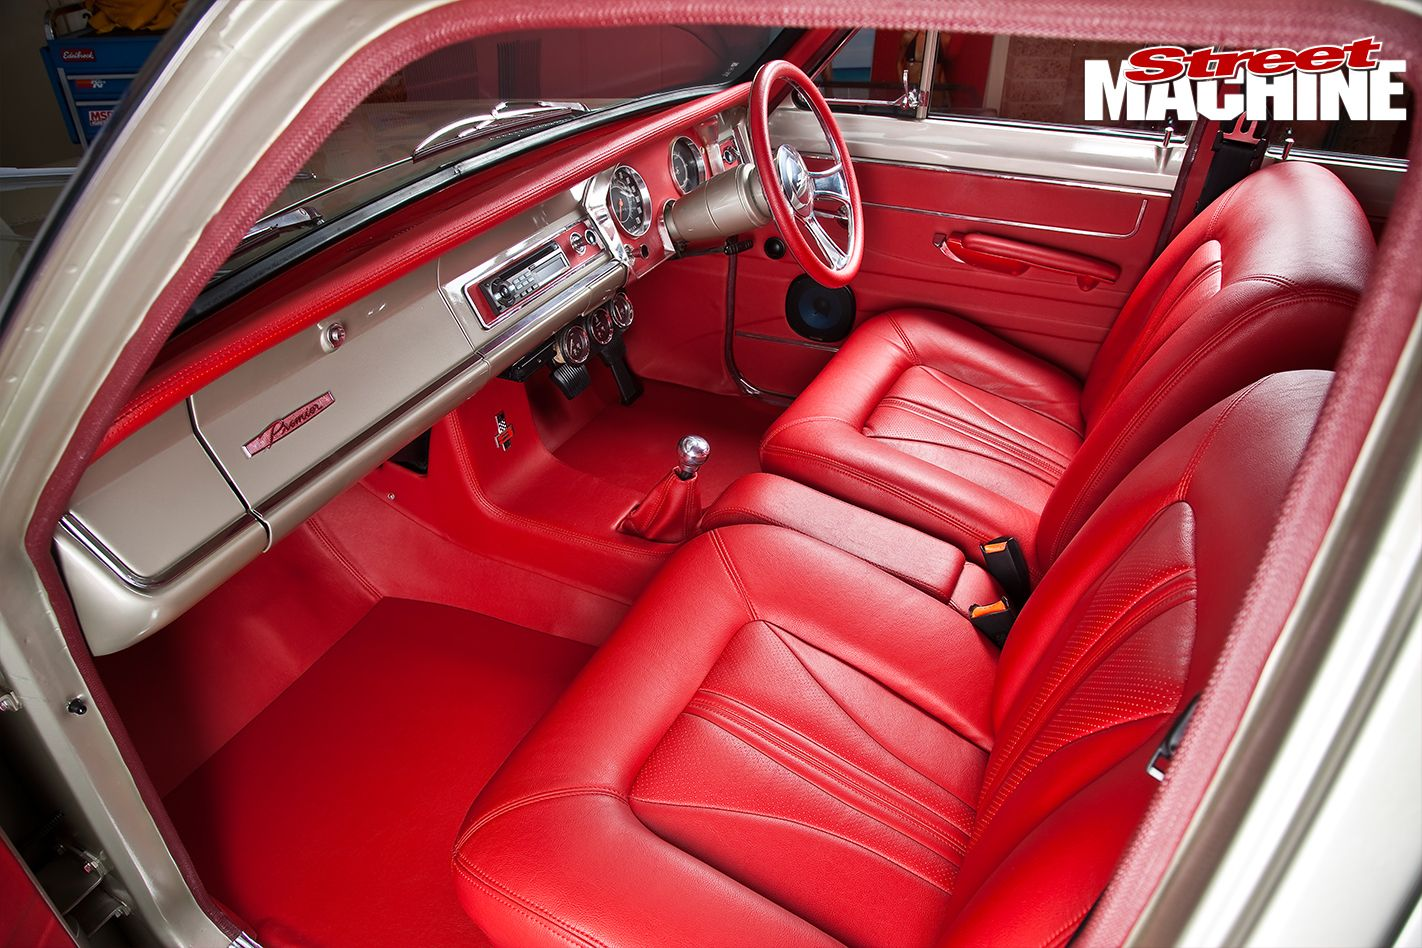 hr holden interior passenger my dream garage pinterest dream garage and cars. Black Bedroom Furniture Sets. Home Design Ideas